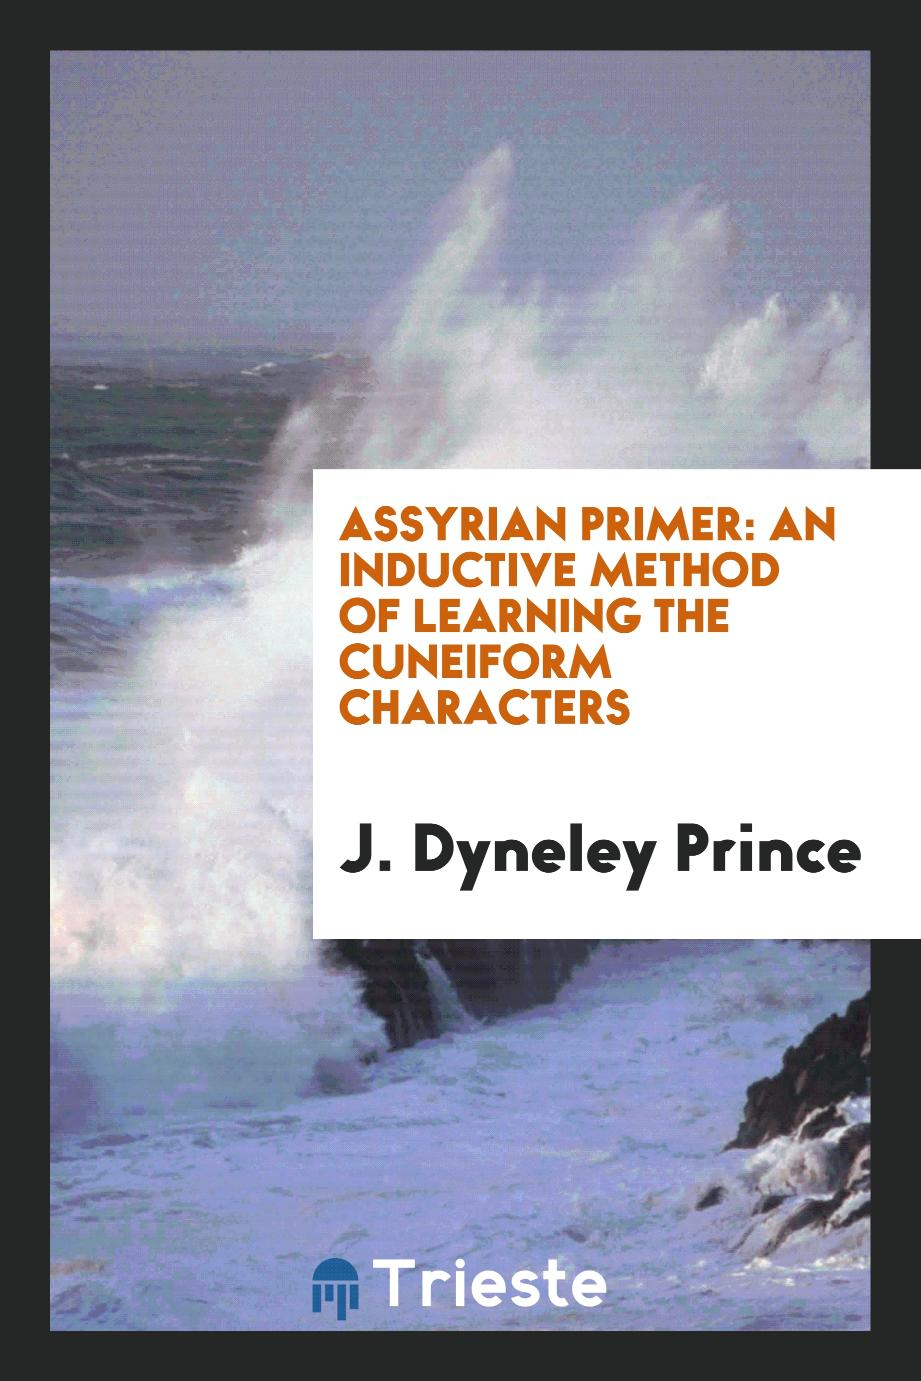 Assyrian Primer: An Inductive Method of Learning the Cuneiform Characters